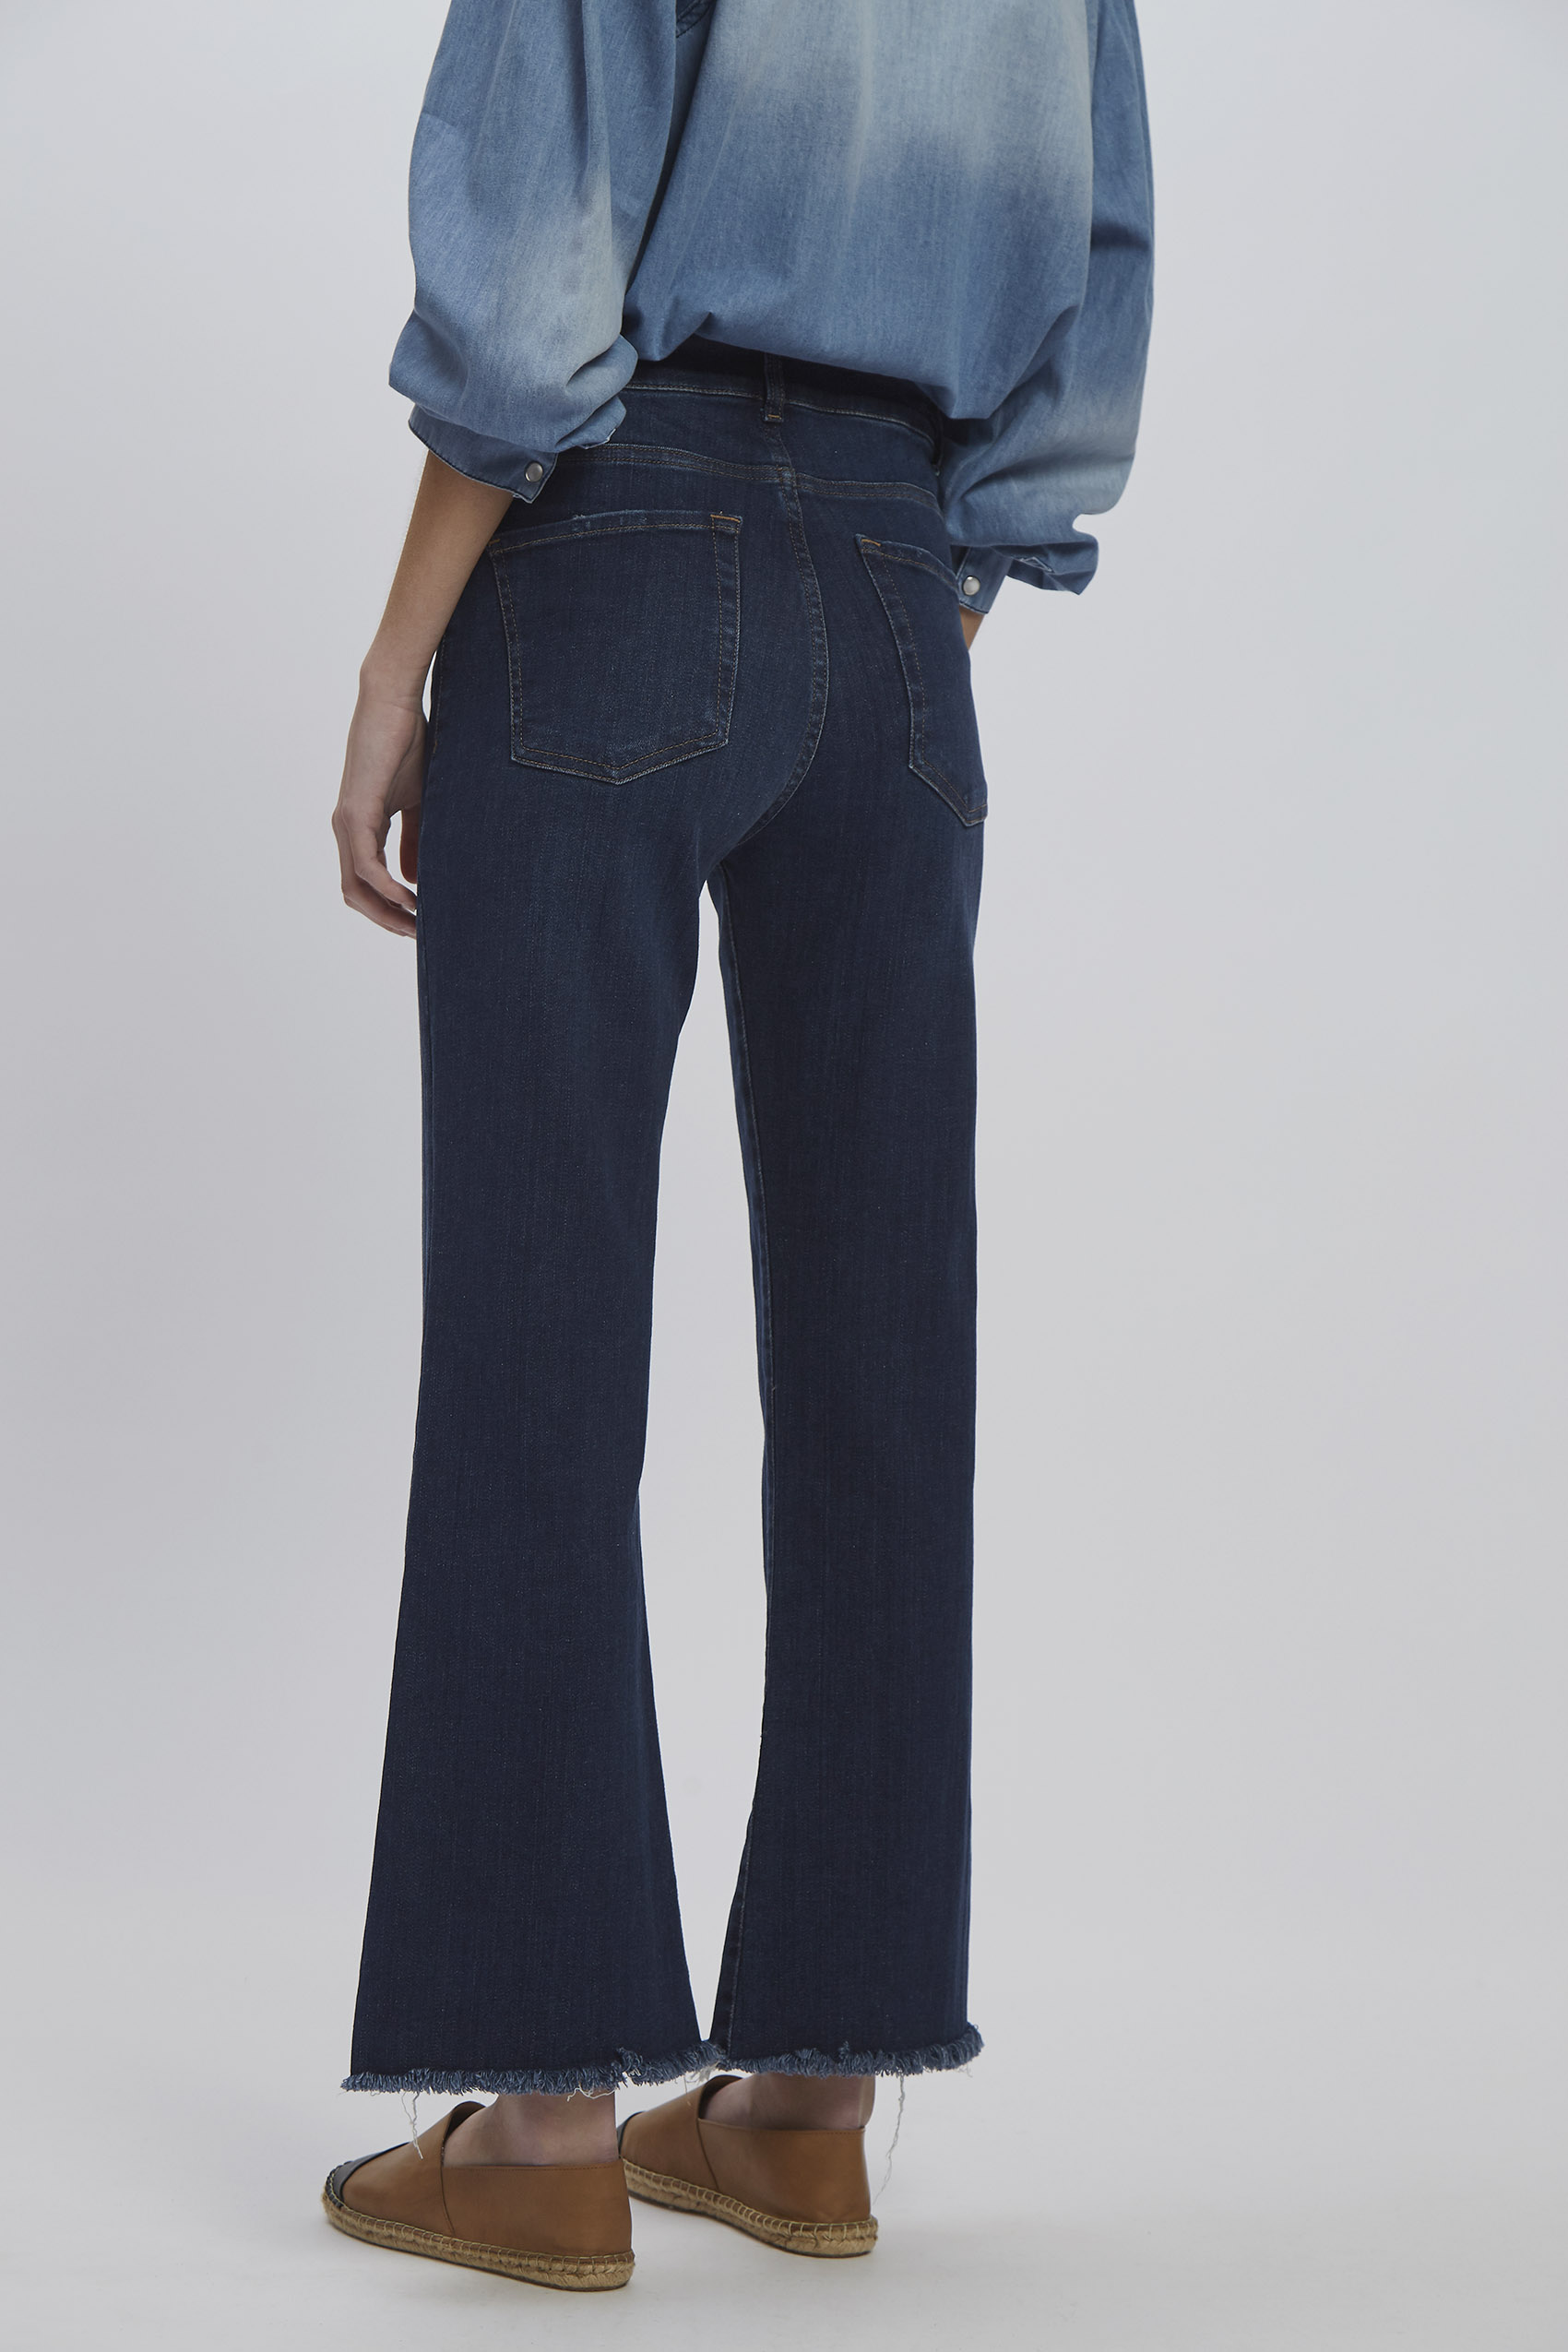 awada_oxford-cropped-jim_40-30-2020__picture-16277